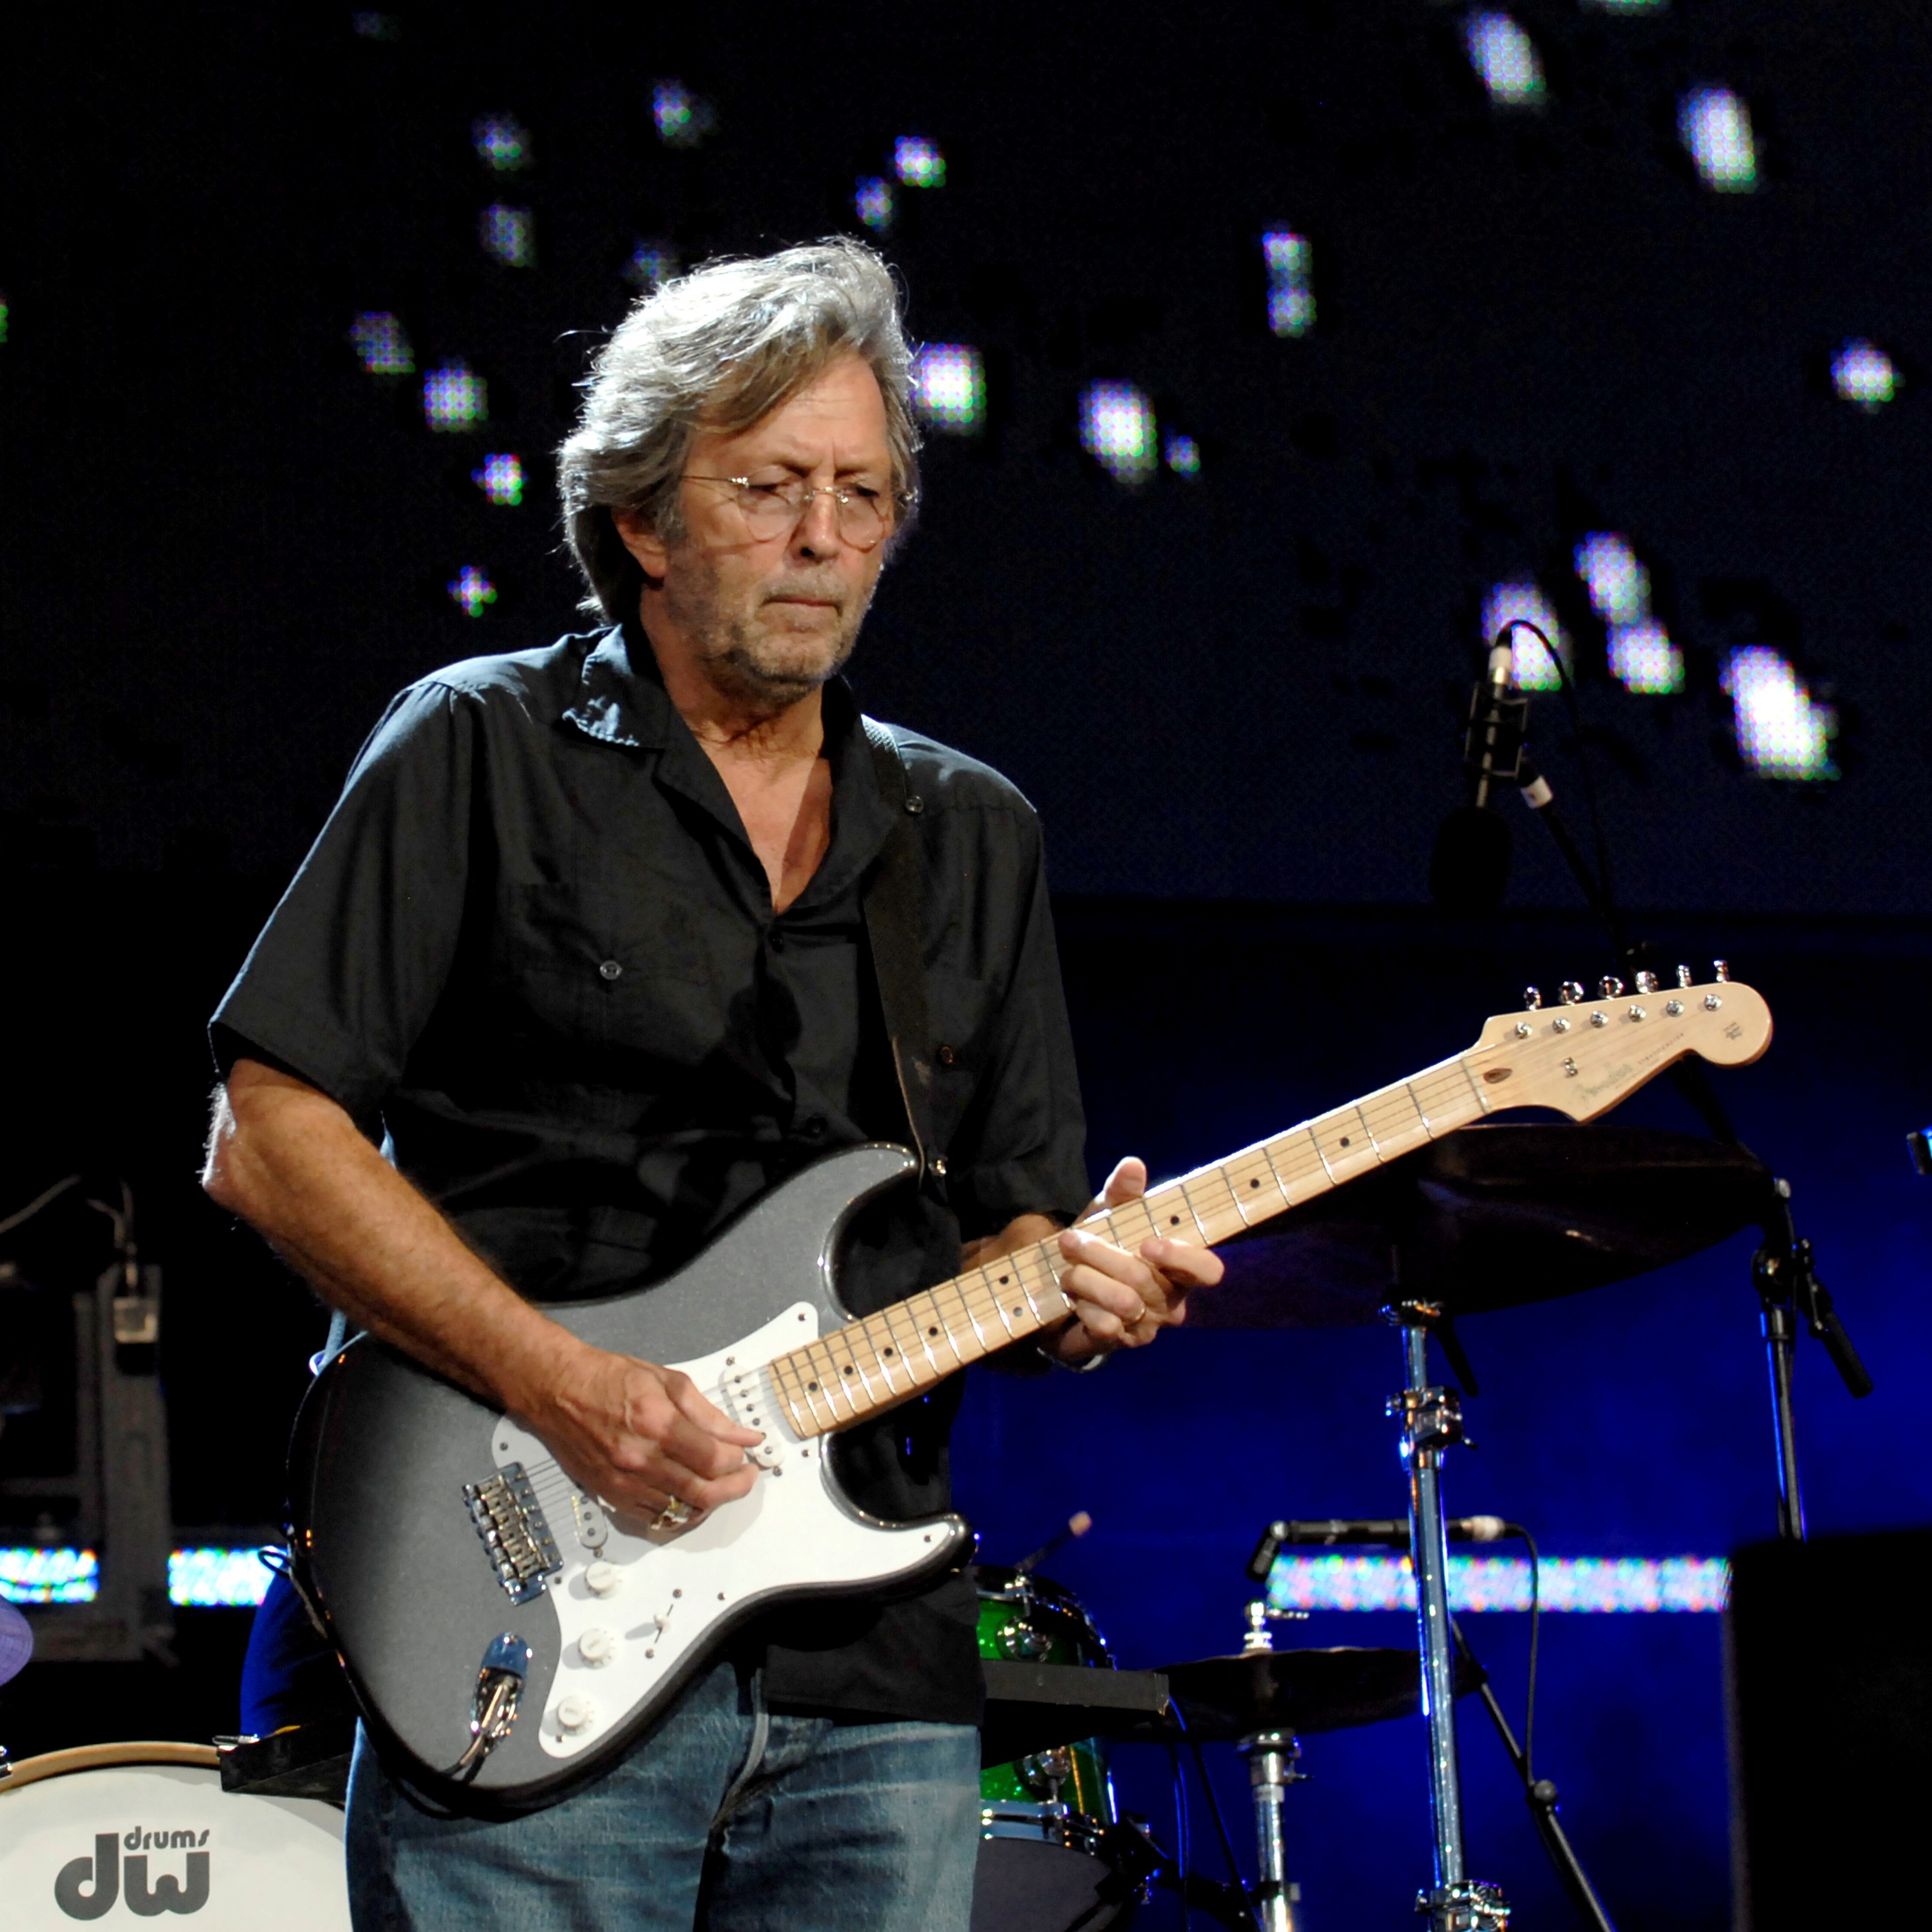 Cocaine Live Eric Clapton: Known People - Famous People News And